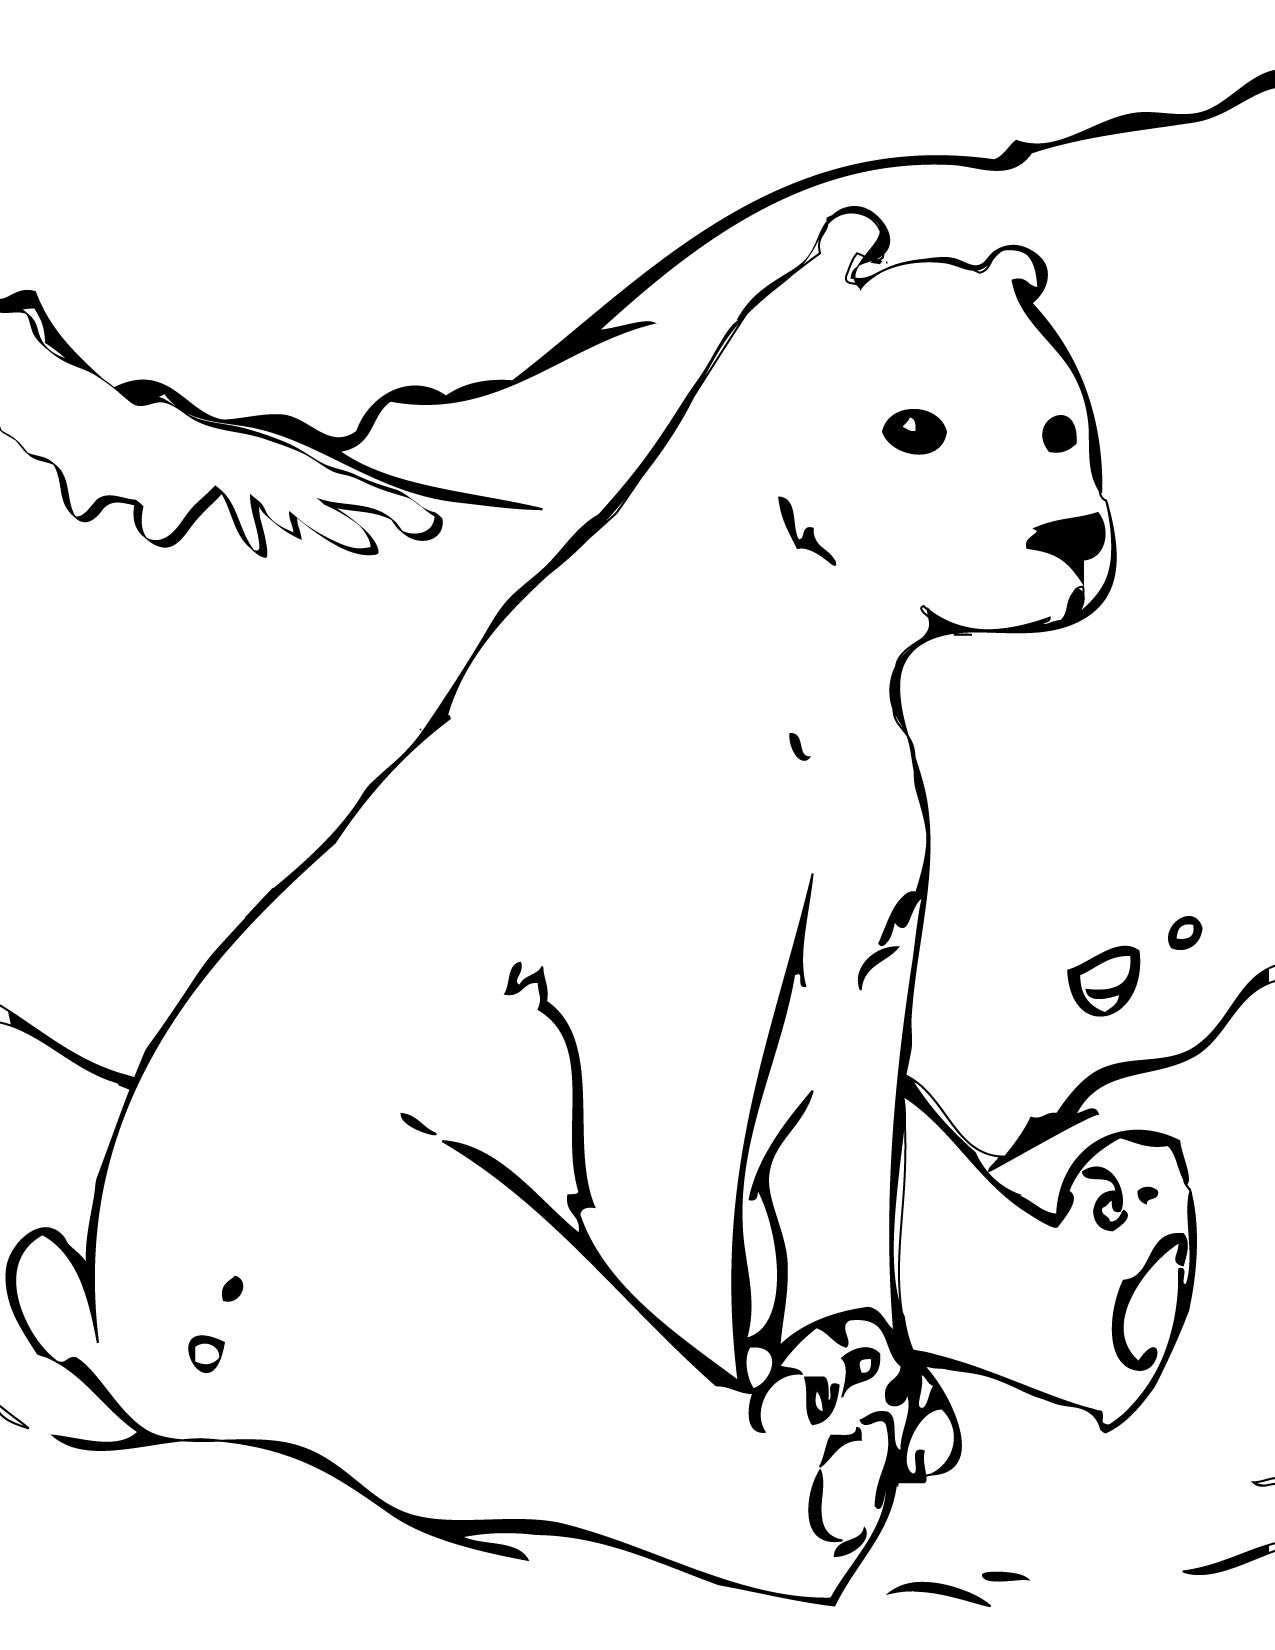 Free Printable Polar Bear Coloring